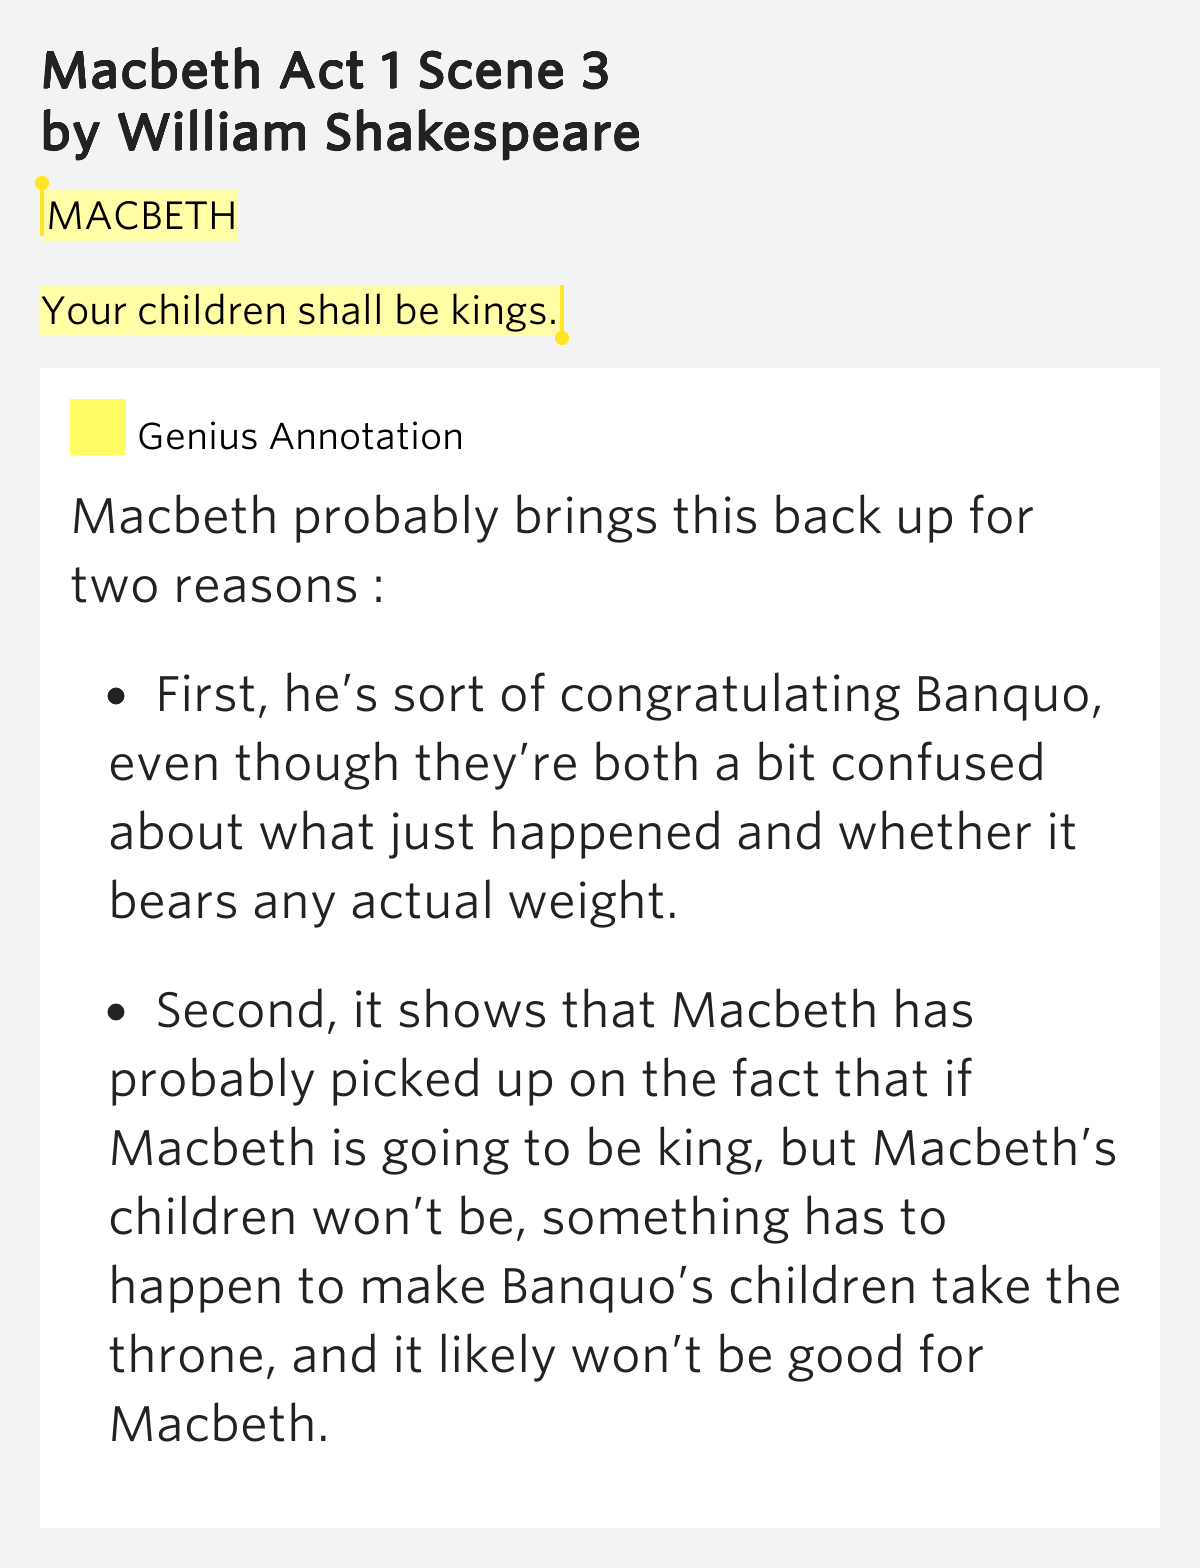 macbeth where events are shaped by ambition and madness essay Why does he delay in seeking it 51 essay 10: though this be madness,  life that shaped his  deception ambition macbeth a tragedy by william.